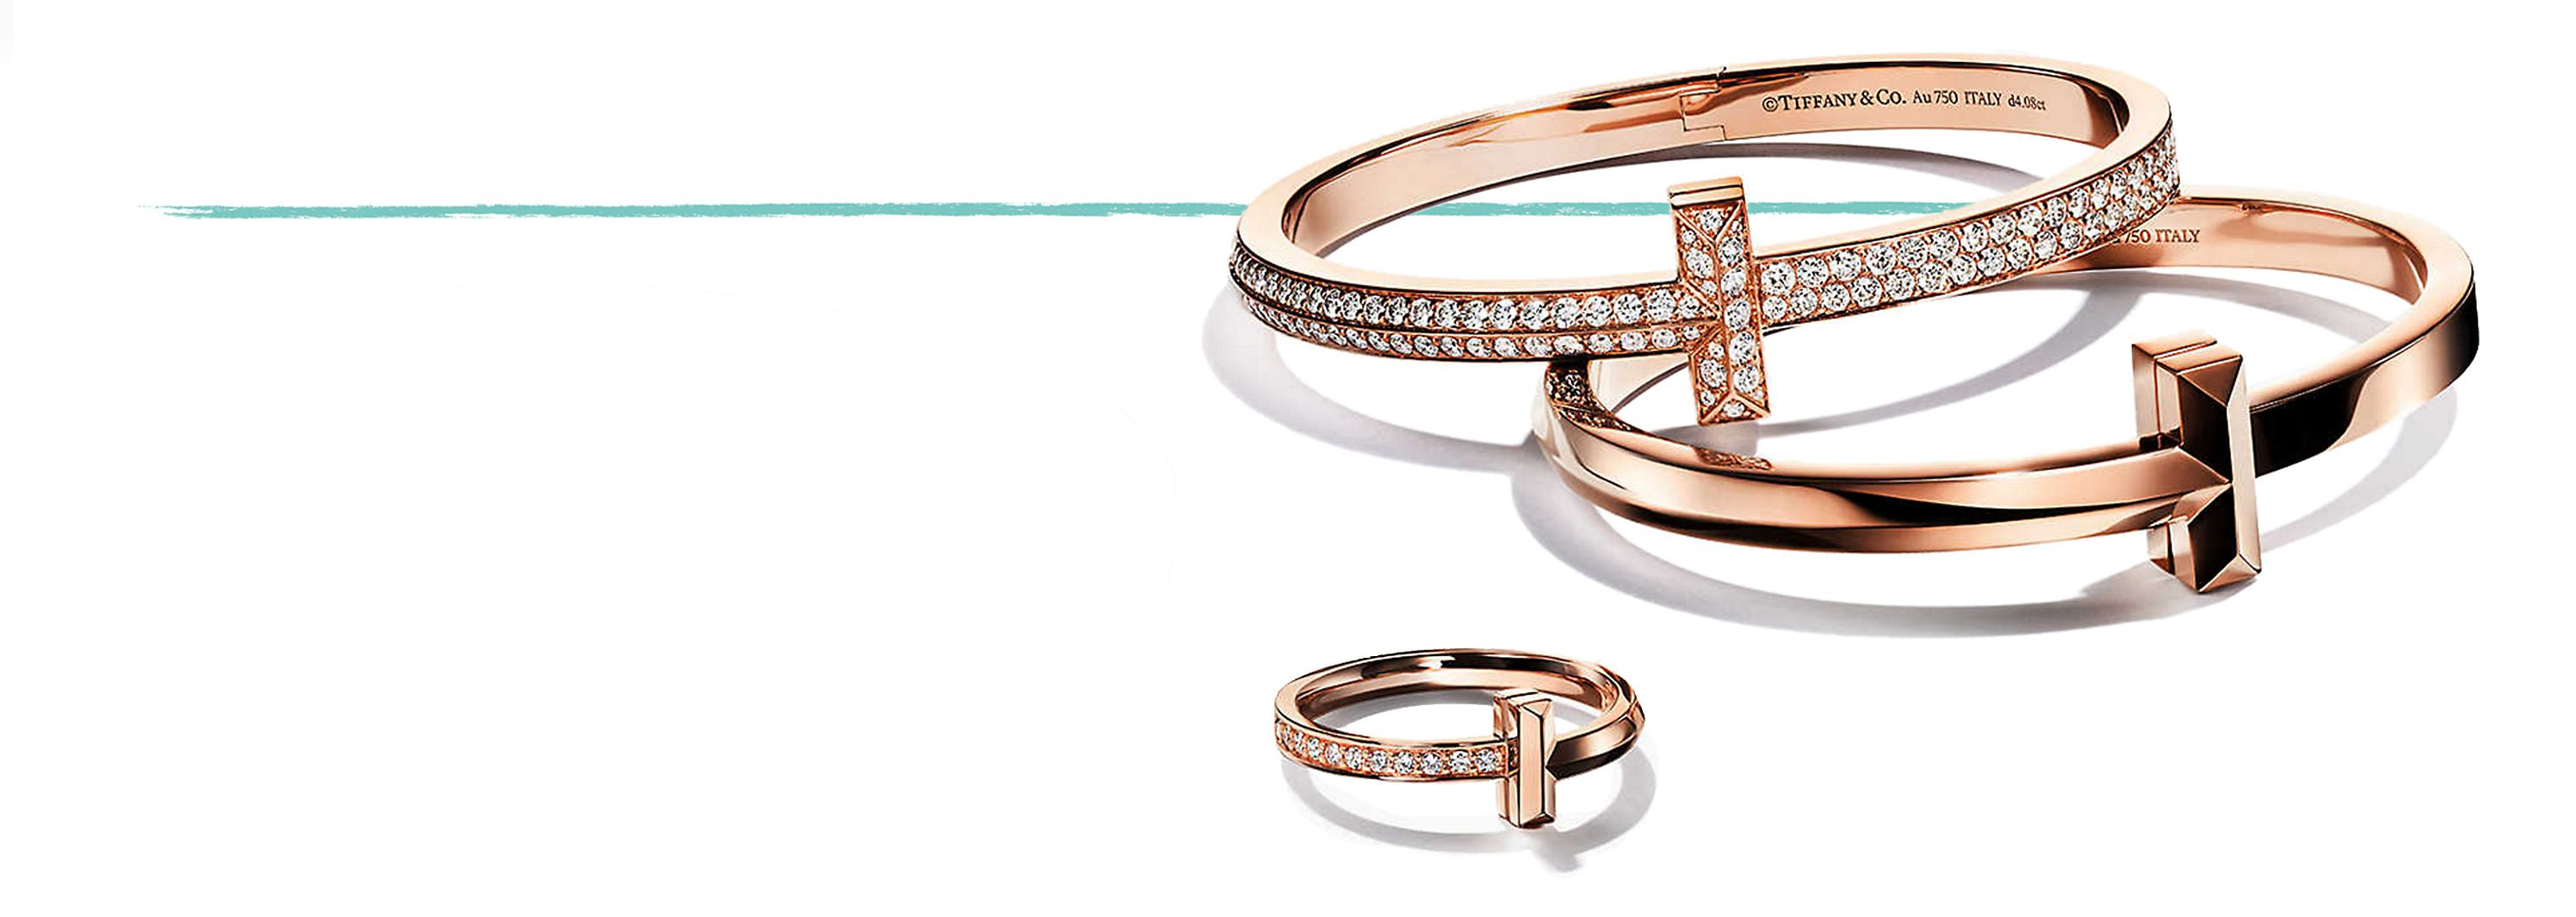 Tiffany & Co. and Earthworks' No Dirty Gold Campaign